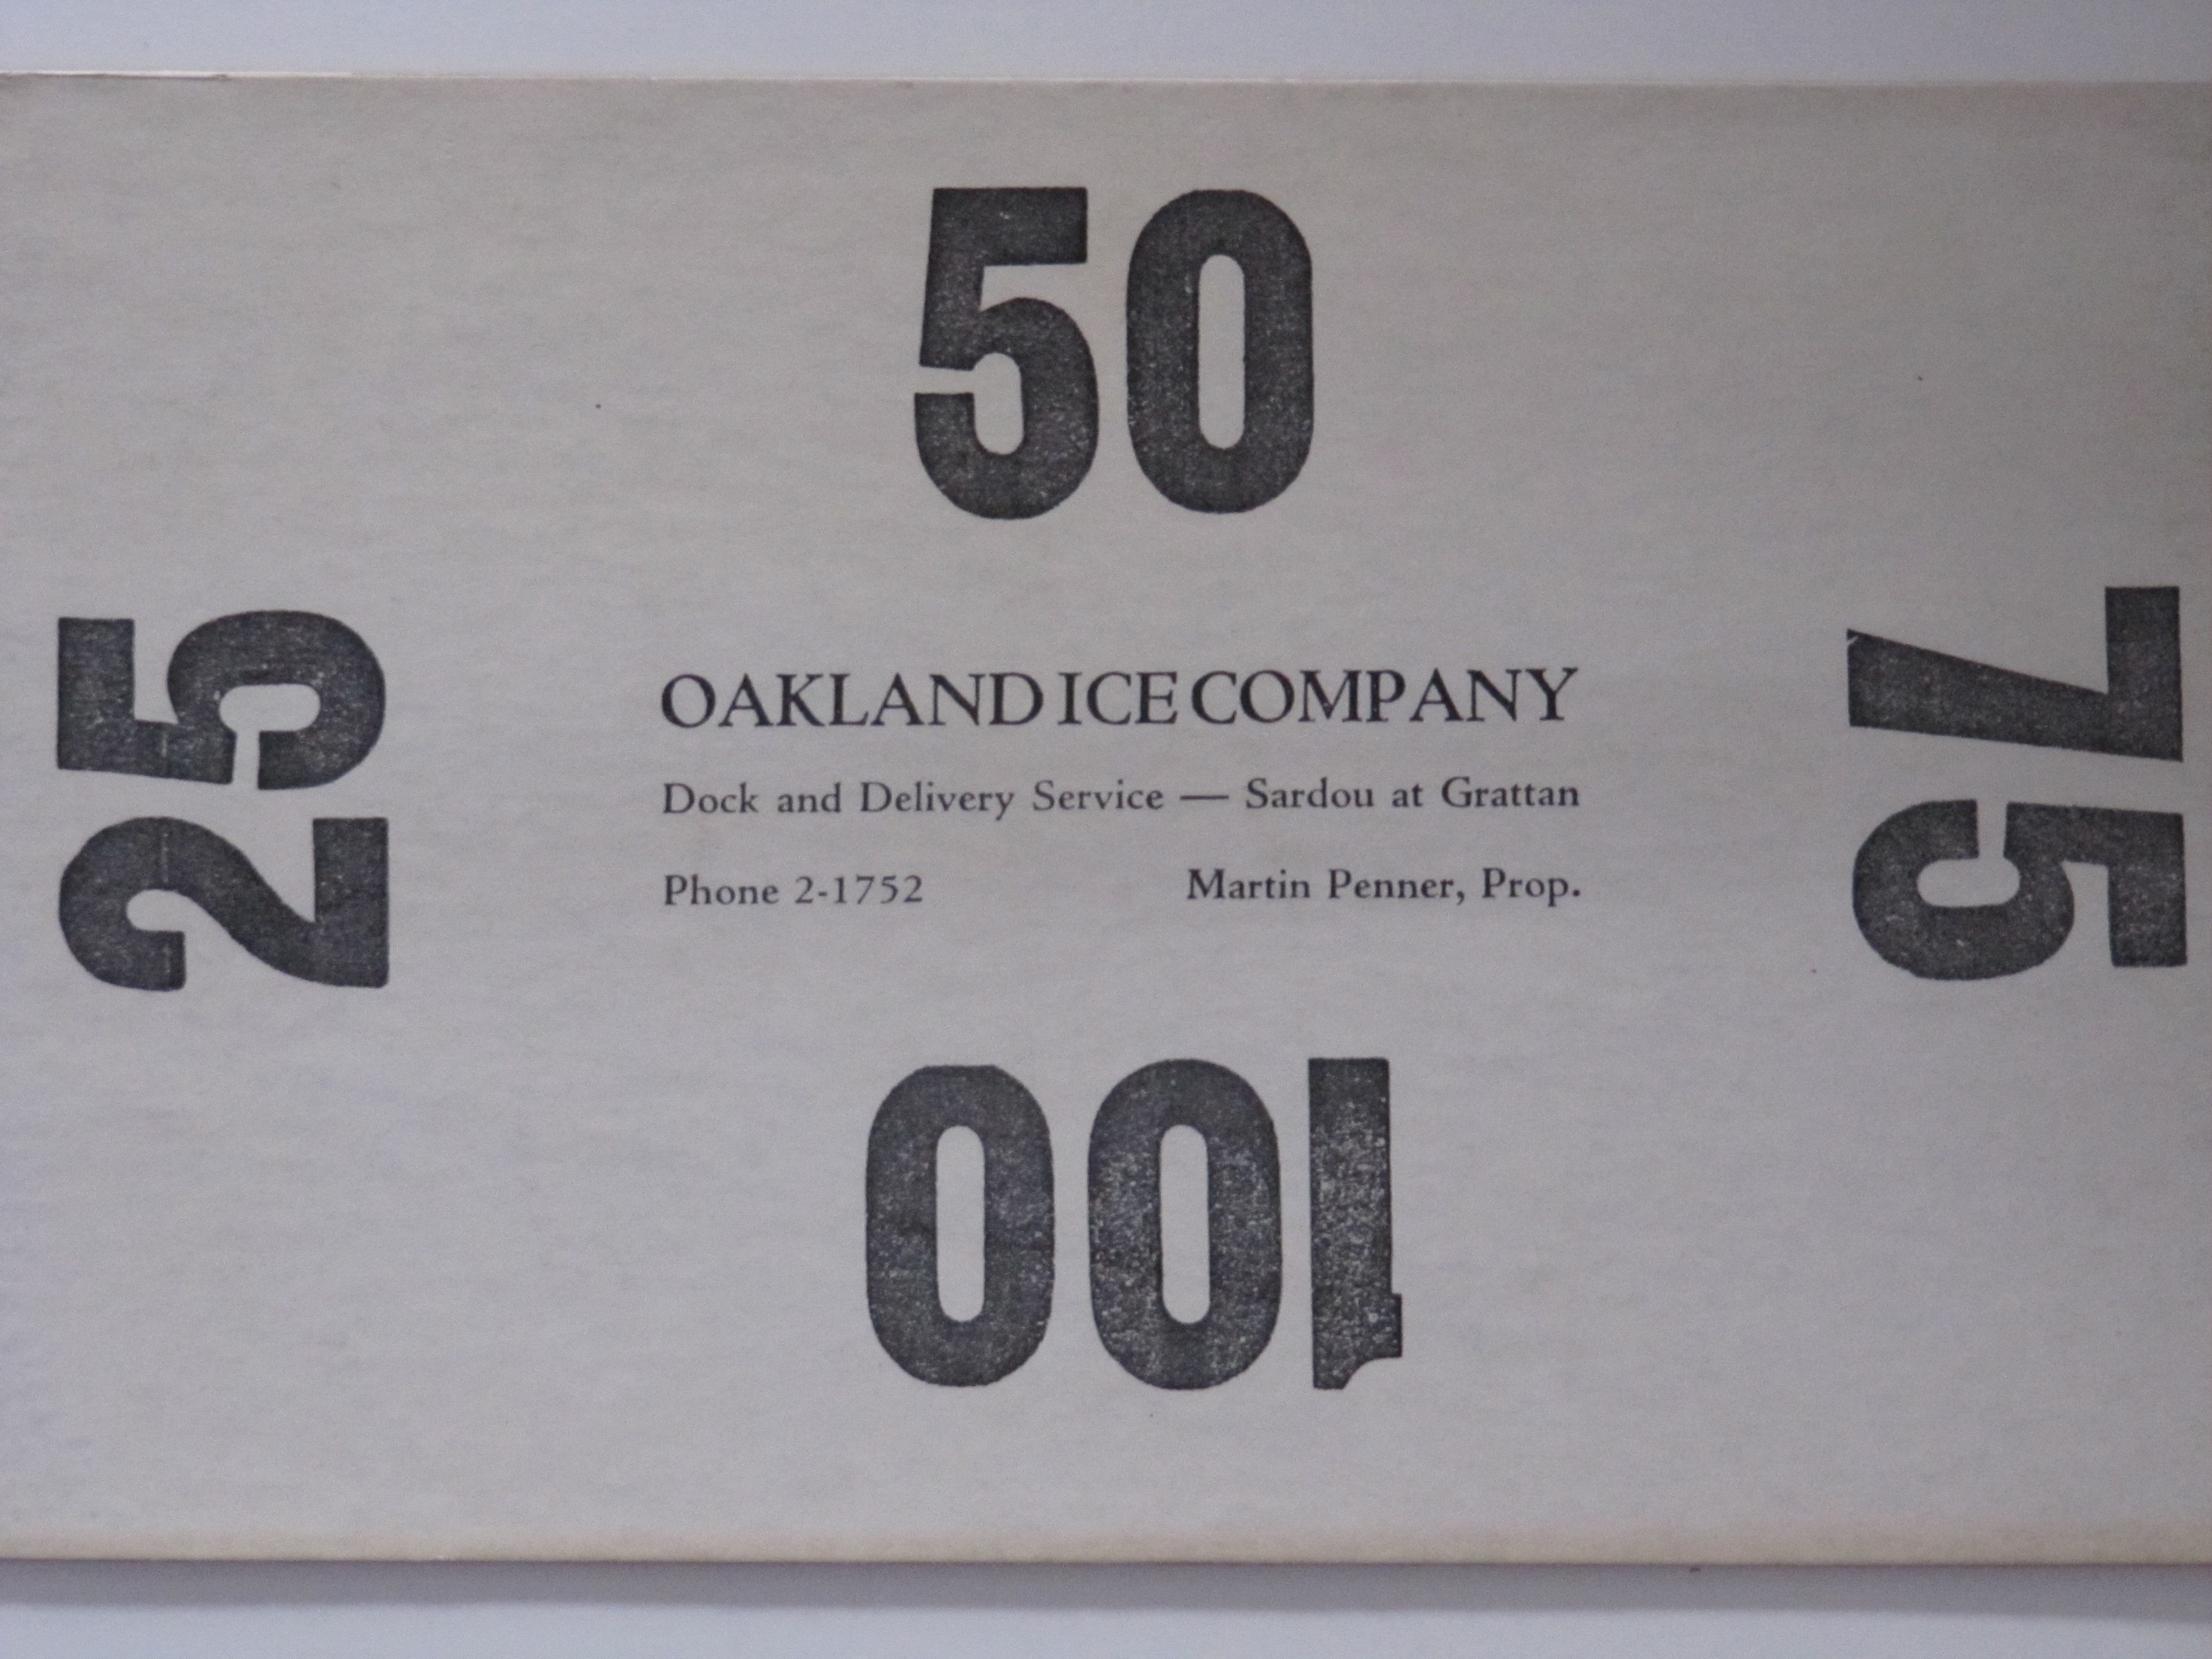 Oakland Ice Co.